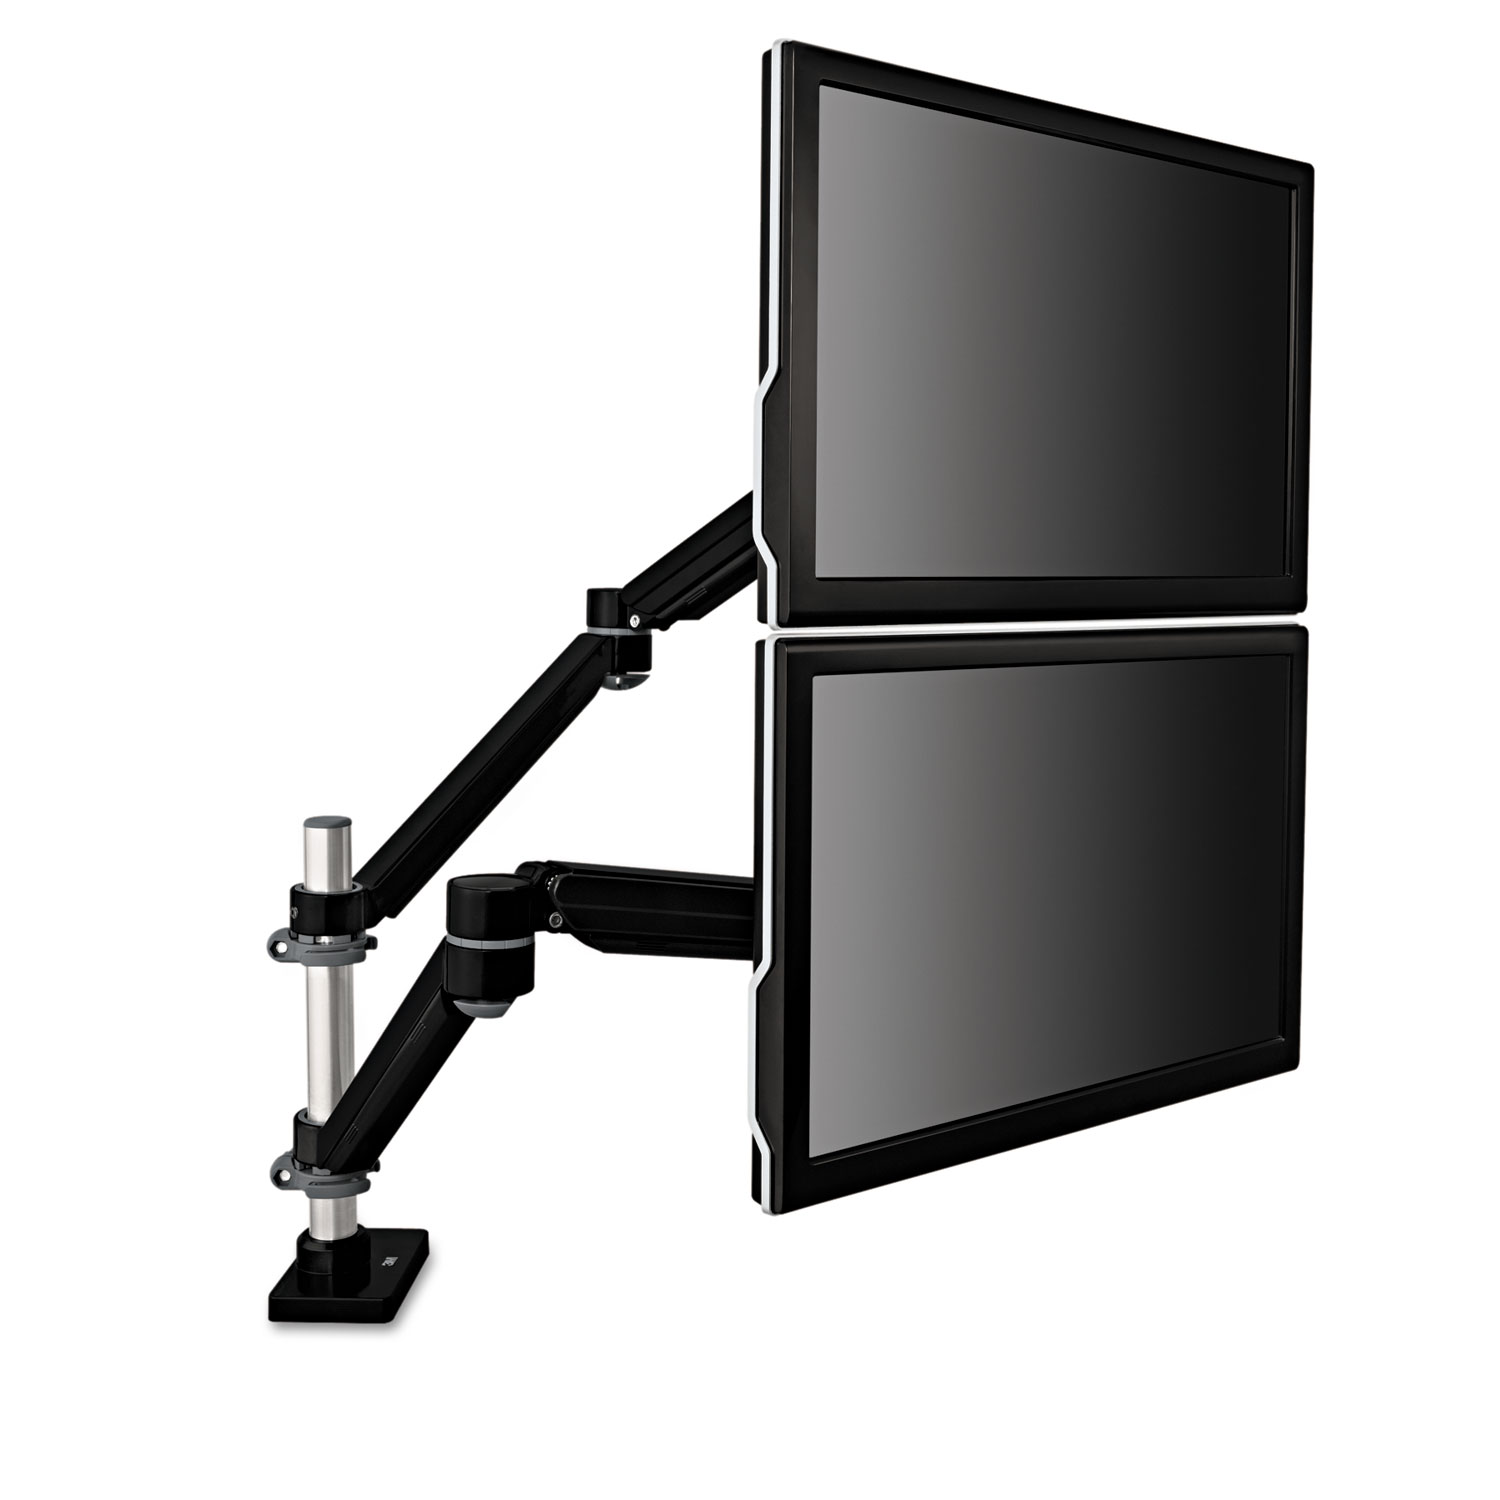 Desk Mount Monitor Arms Thumbnail 1